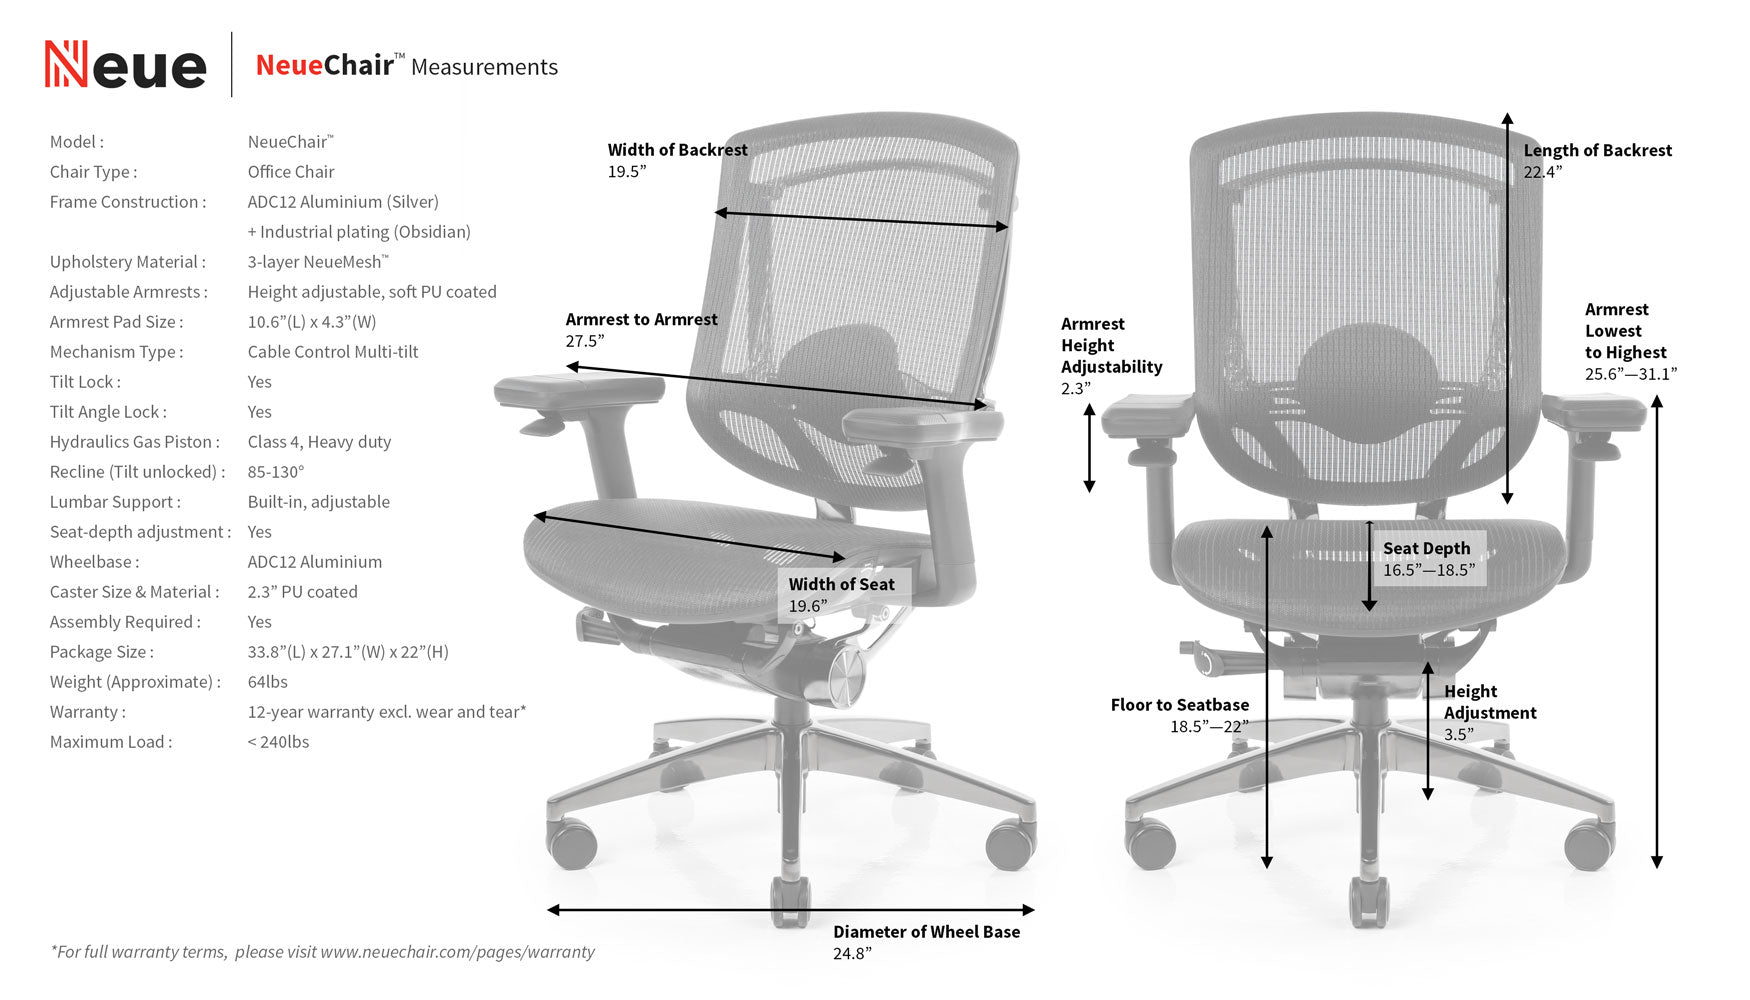 NeueChair Measurements Specification Sheet